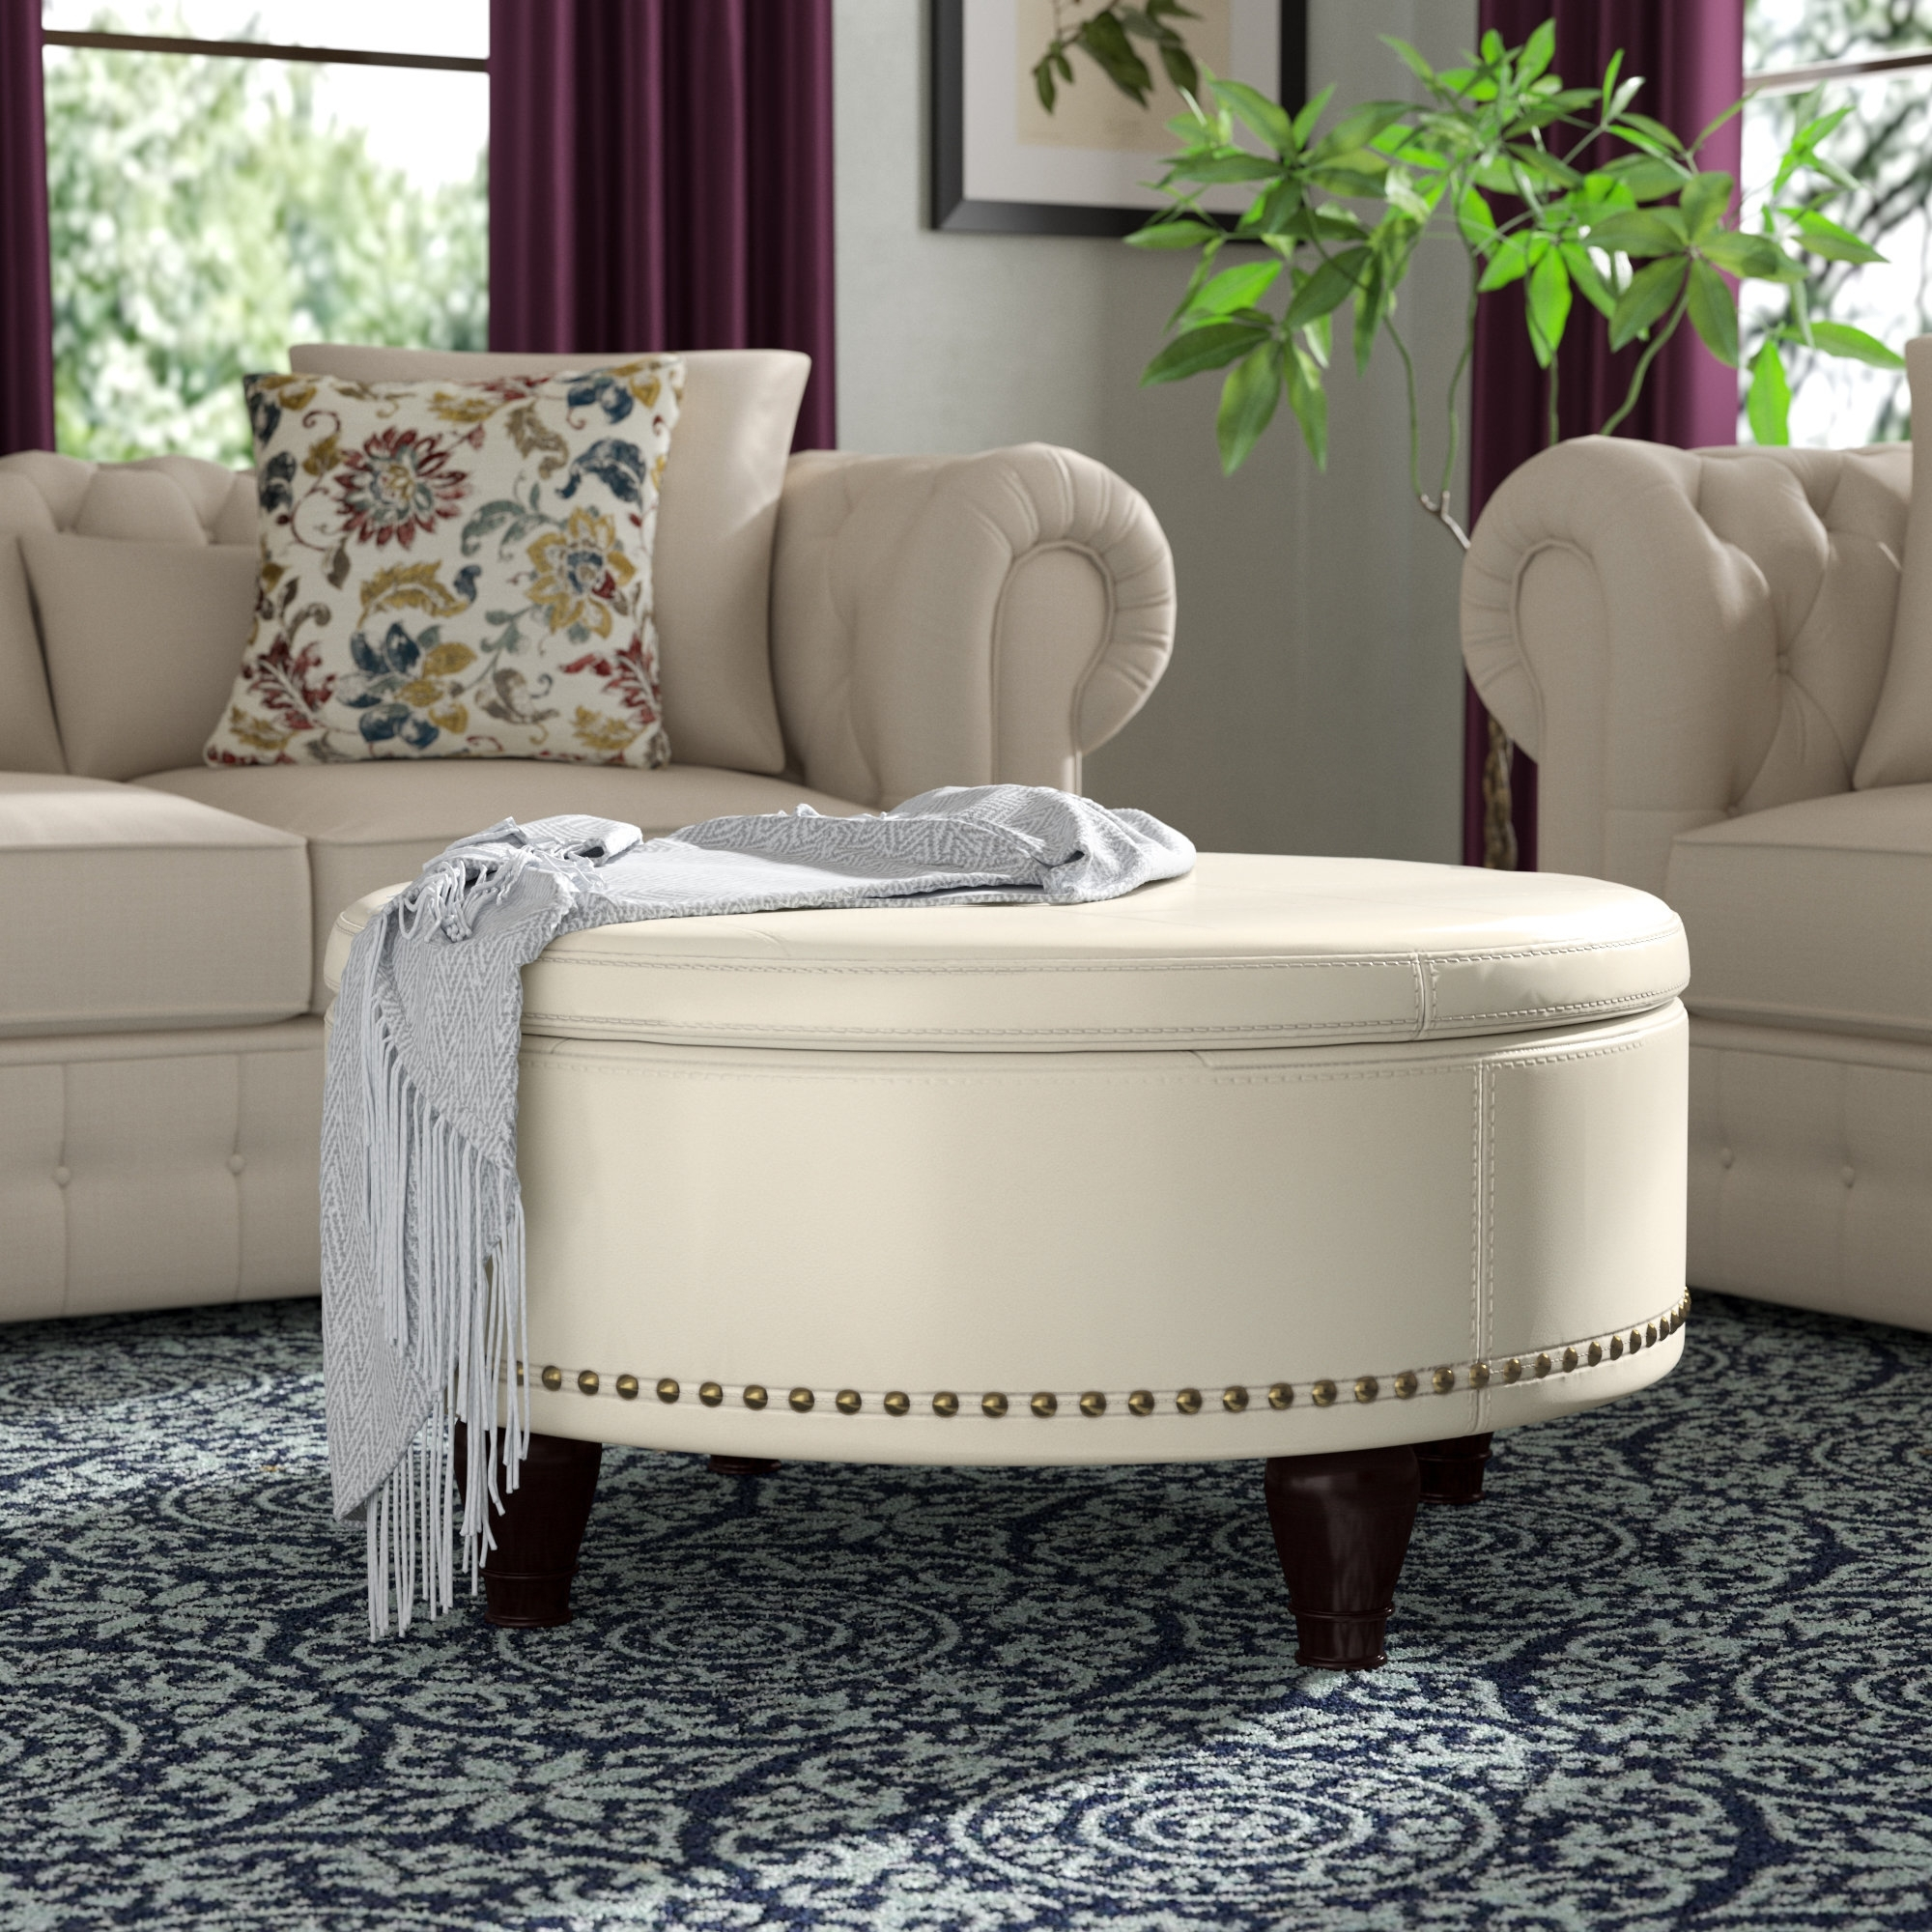 Wayfair Regarding Recent Mill Large Leather Coffee Tables (View 16 of 20)